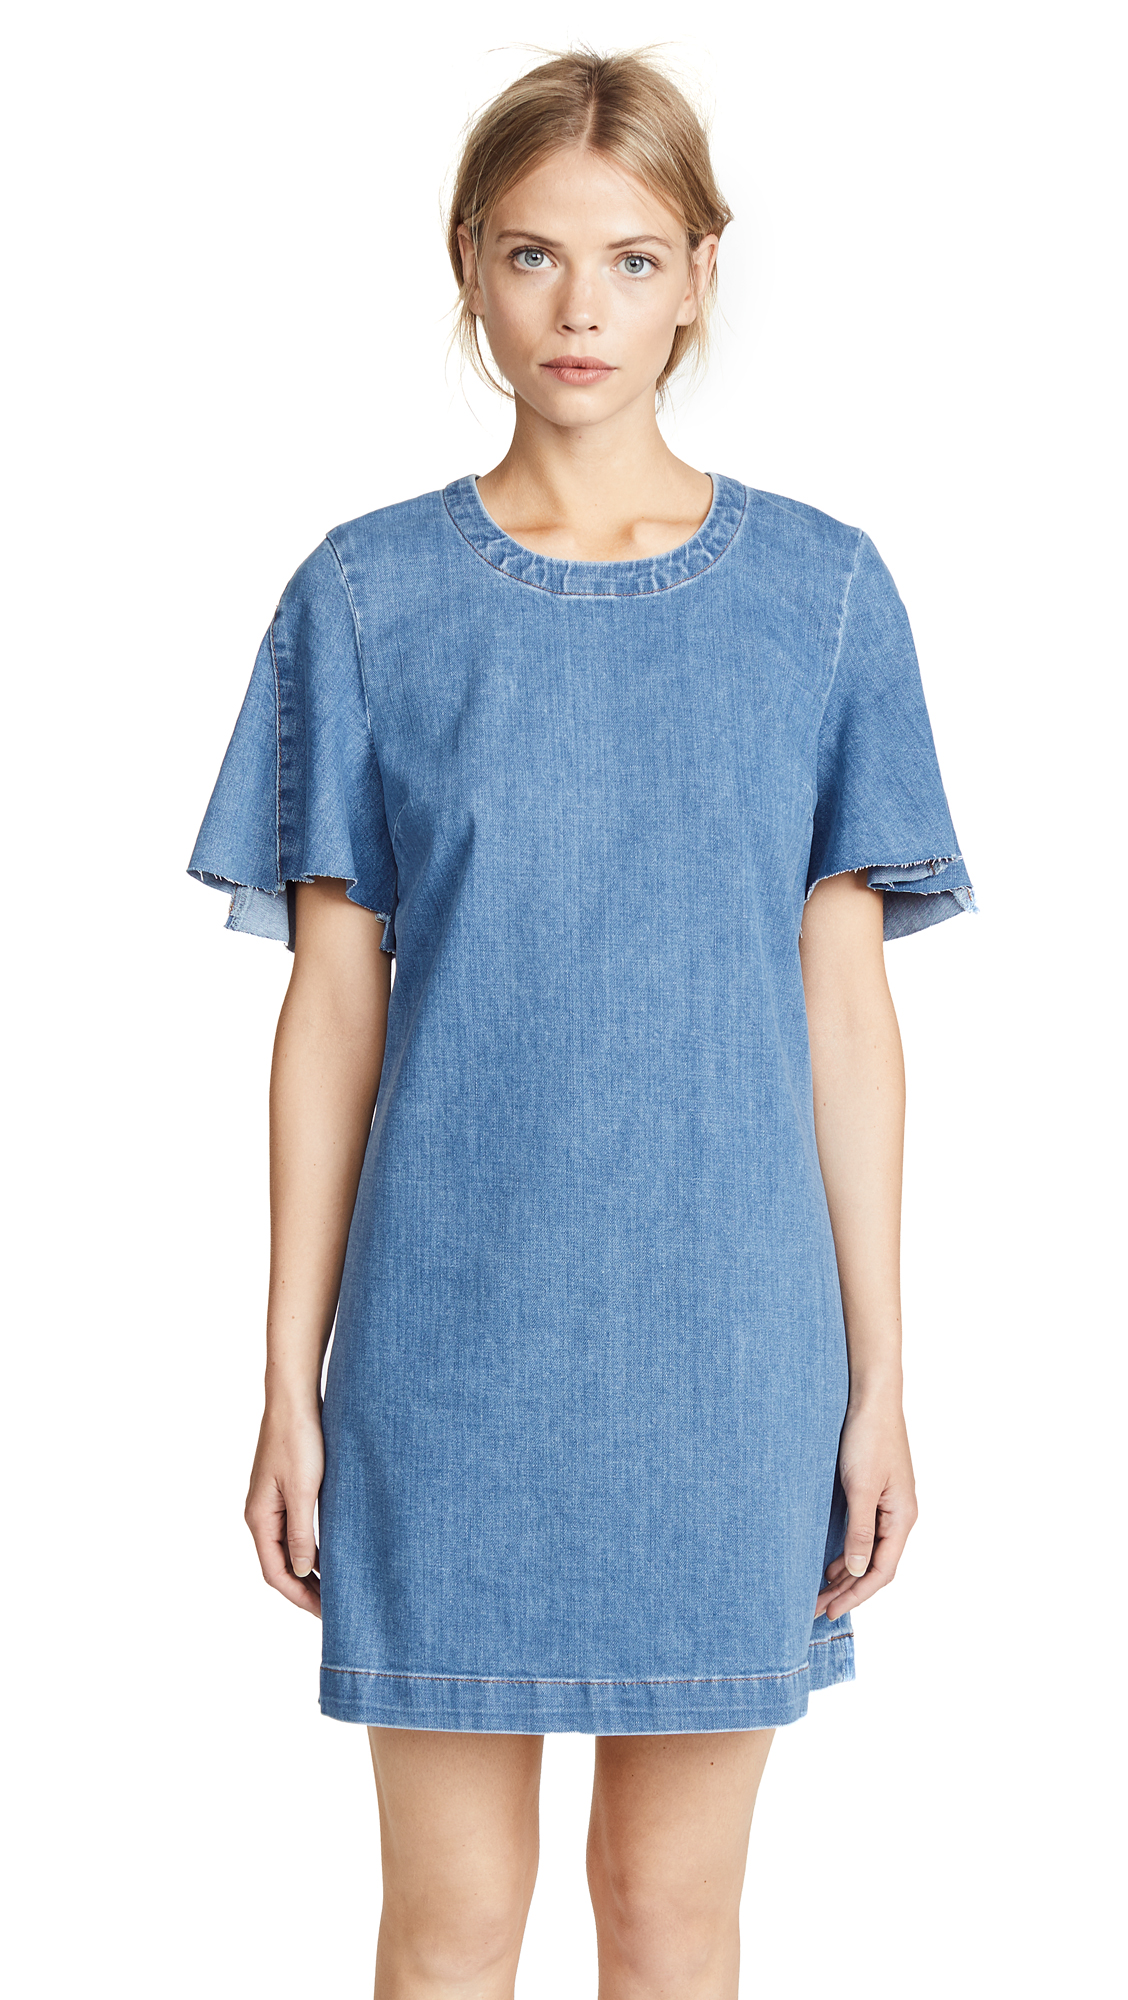 7 For All Mankind Popover Denim Dress In Bright Blue Jay